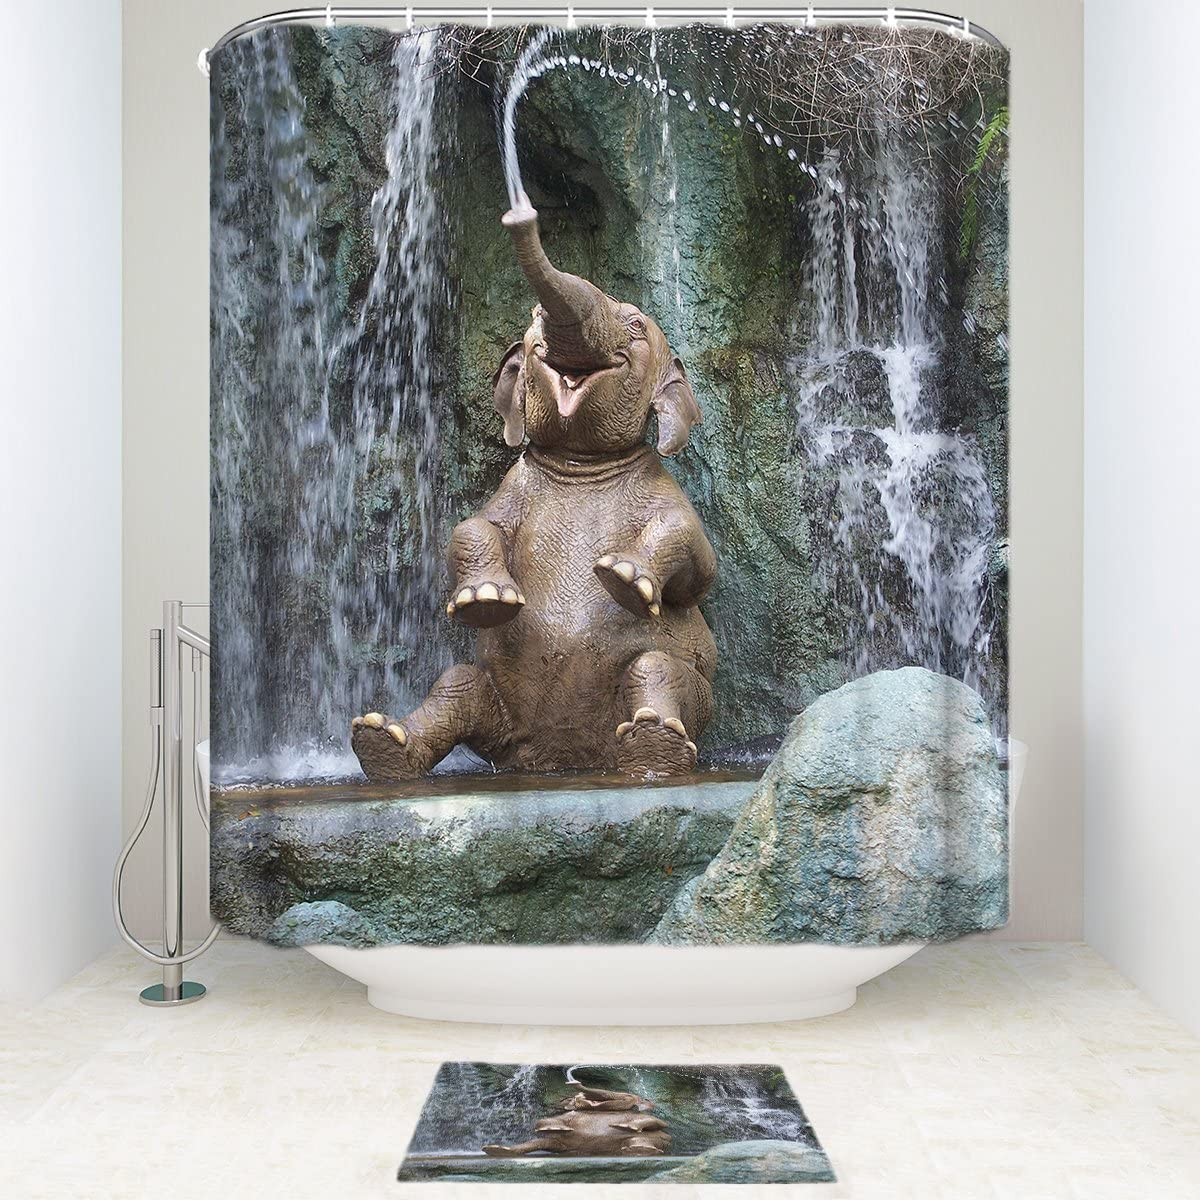 Amazon.com: SUN-Shine Funny Elephant Bathroom Shower Curtain Sets